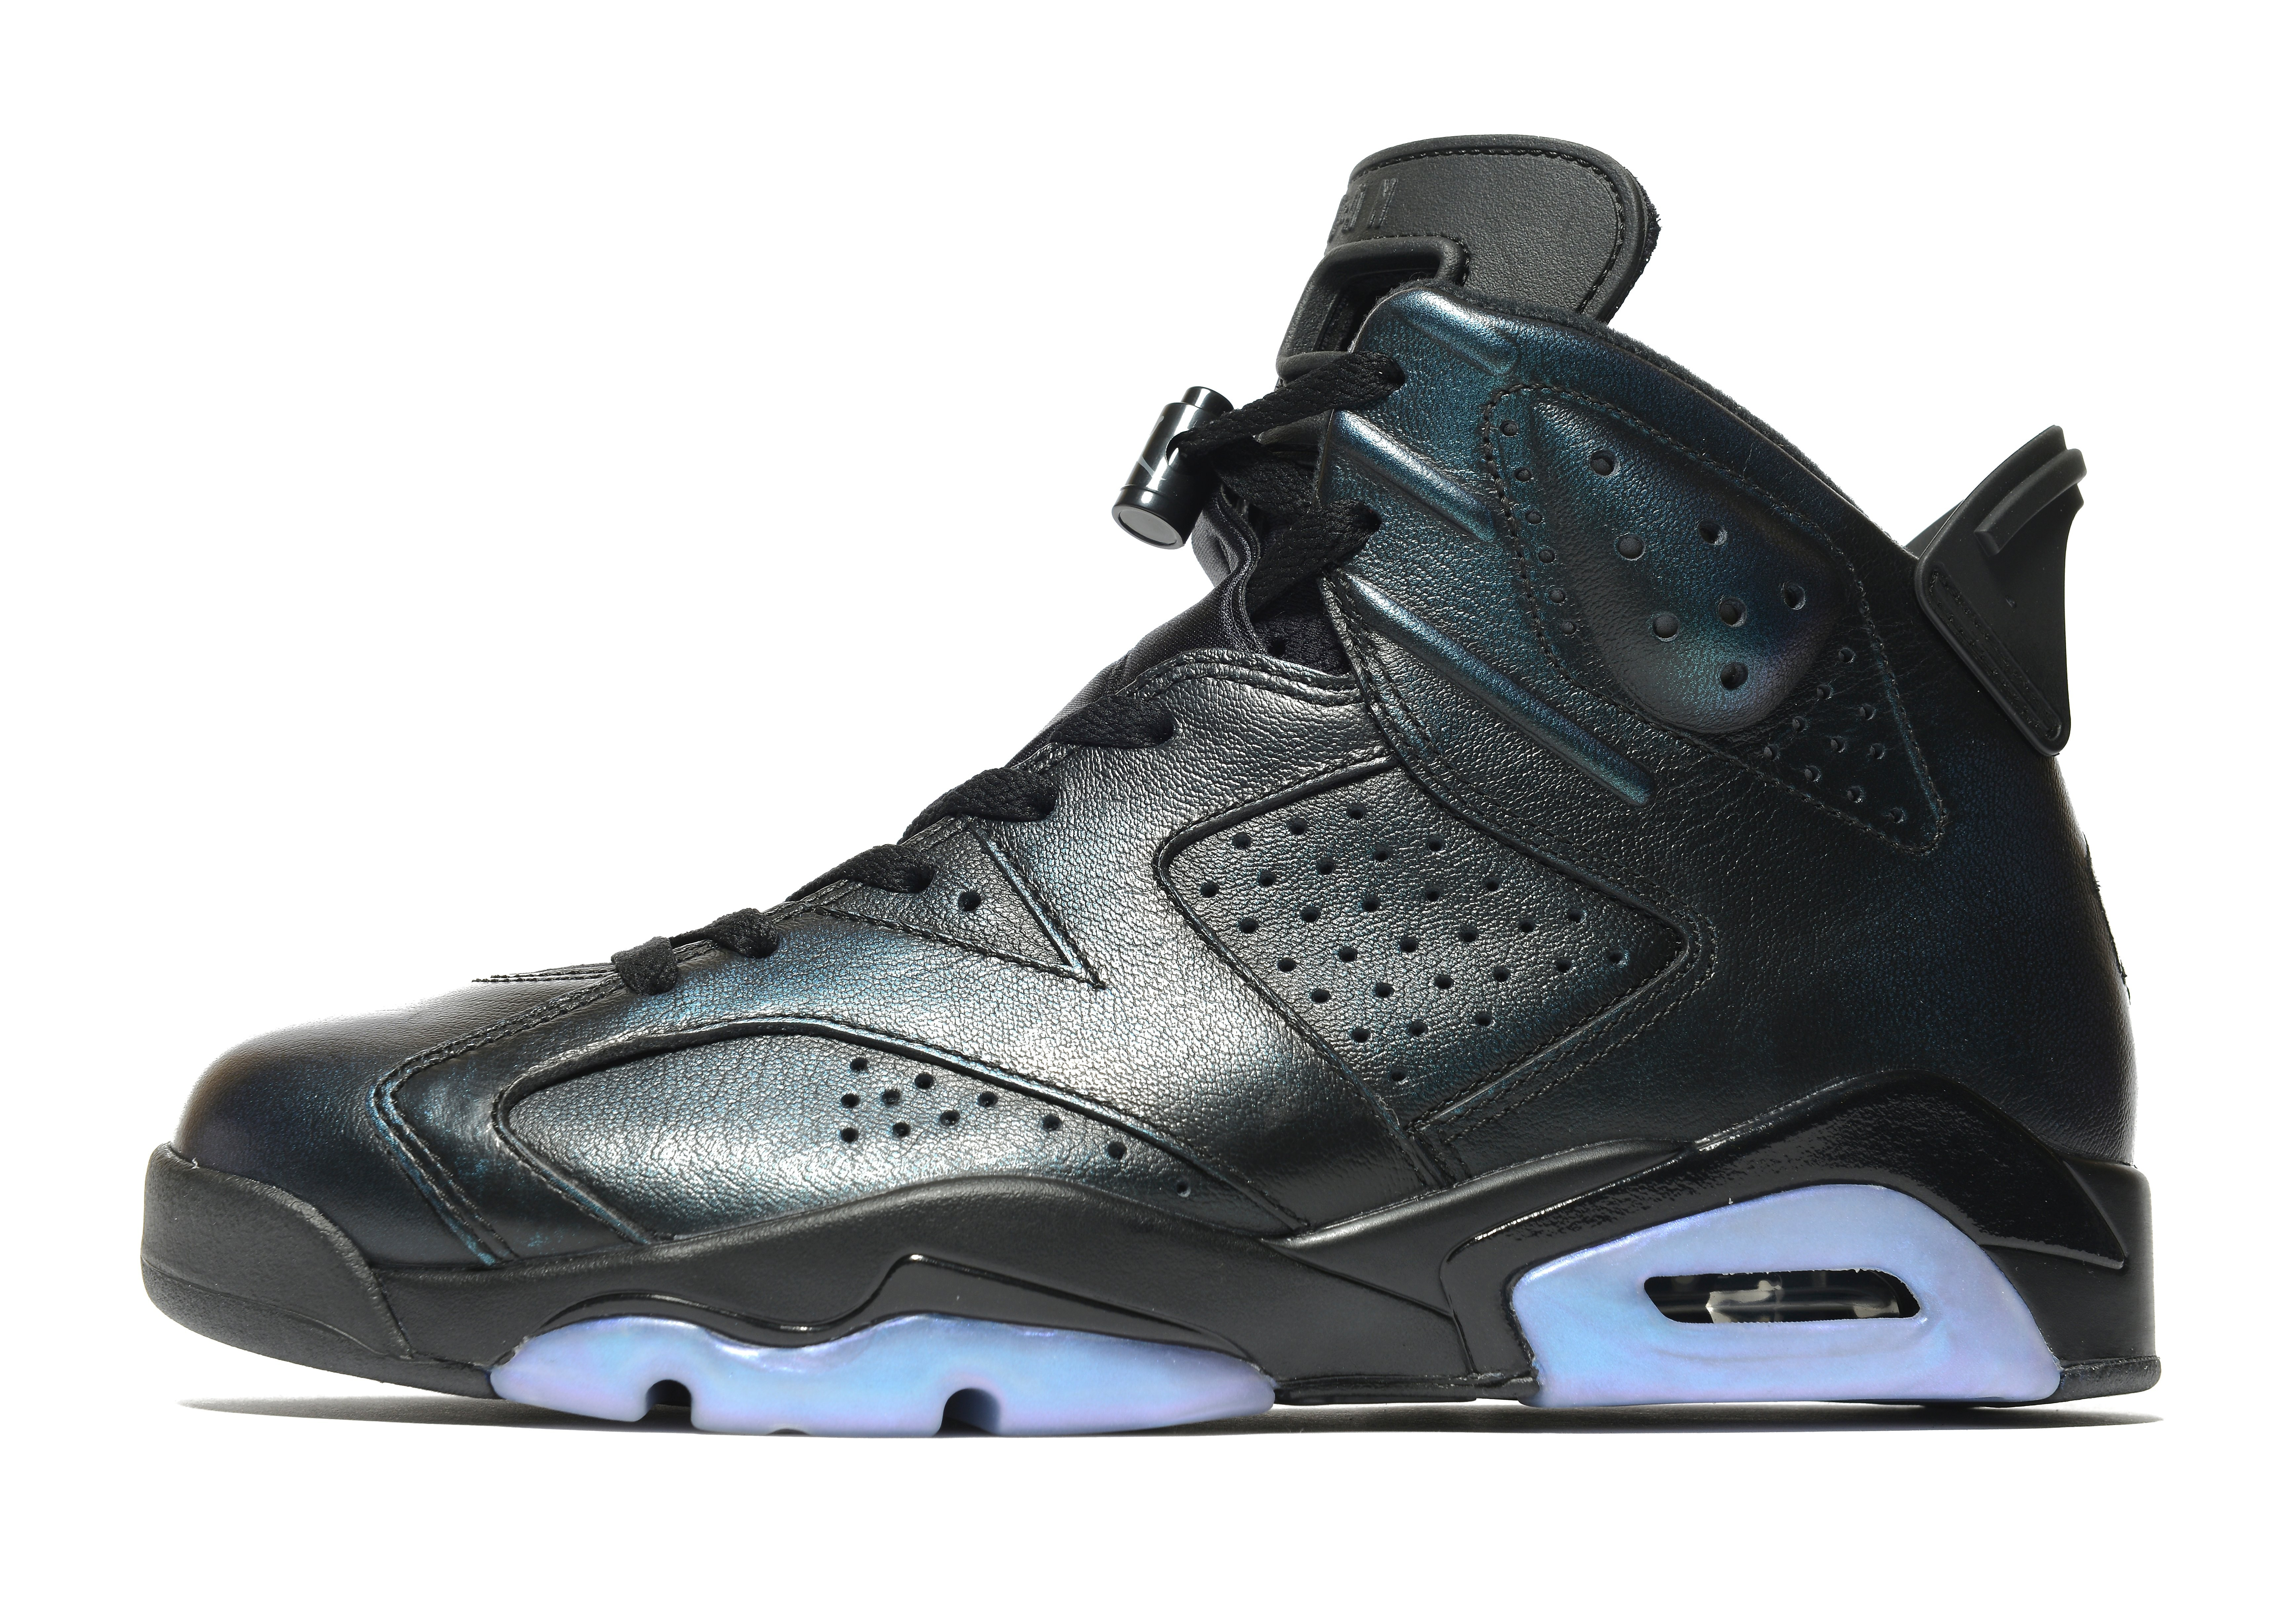 Jordan Air Retro 6 'Gotta Shine'